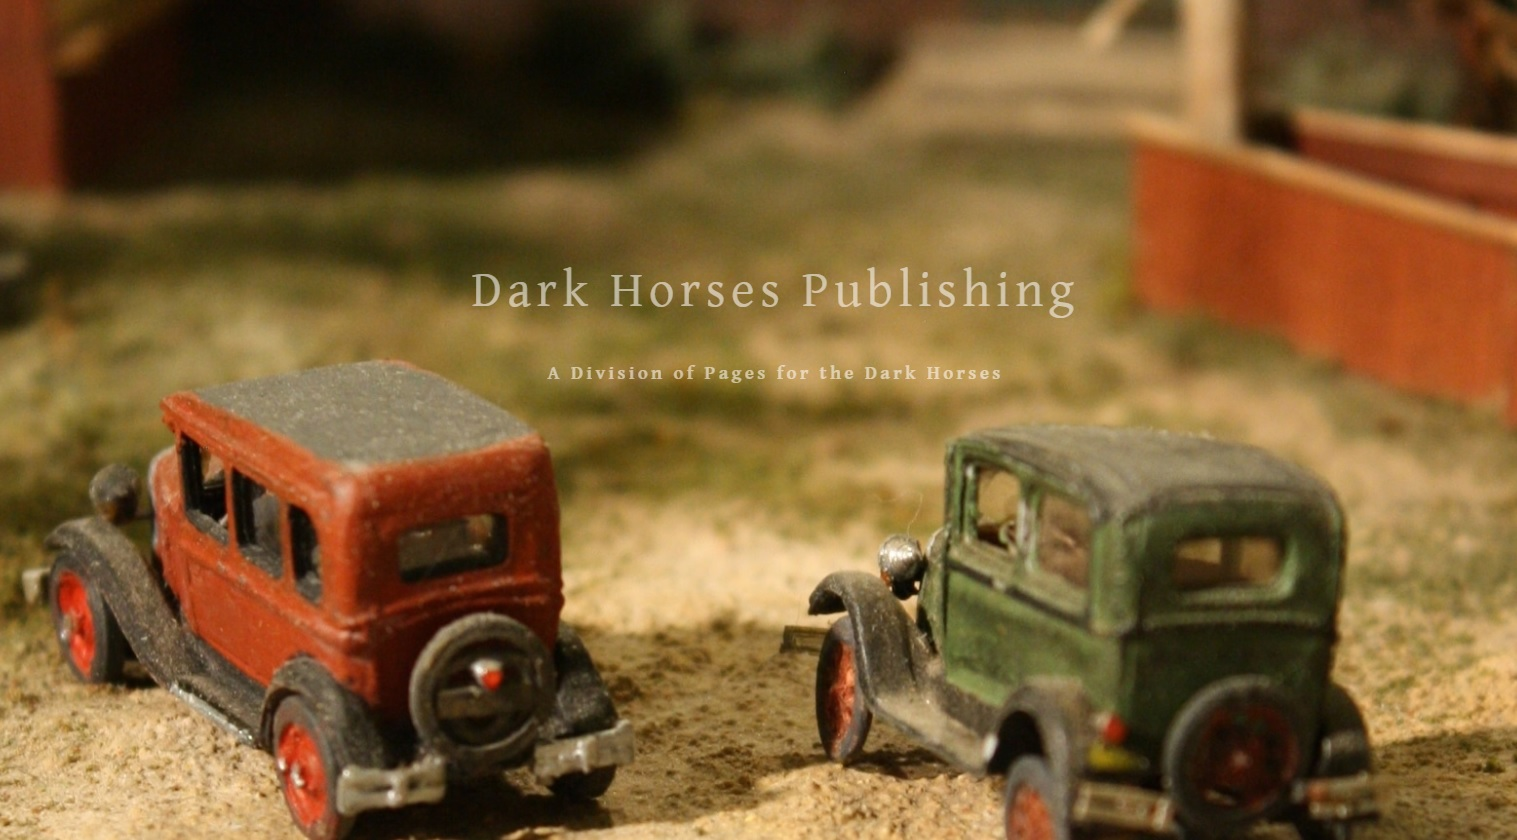 Looking for the Books? Dark Horses Publishing